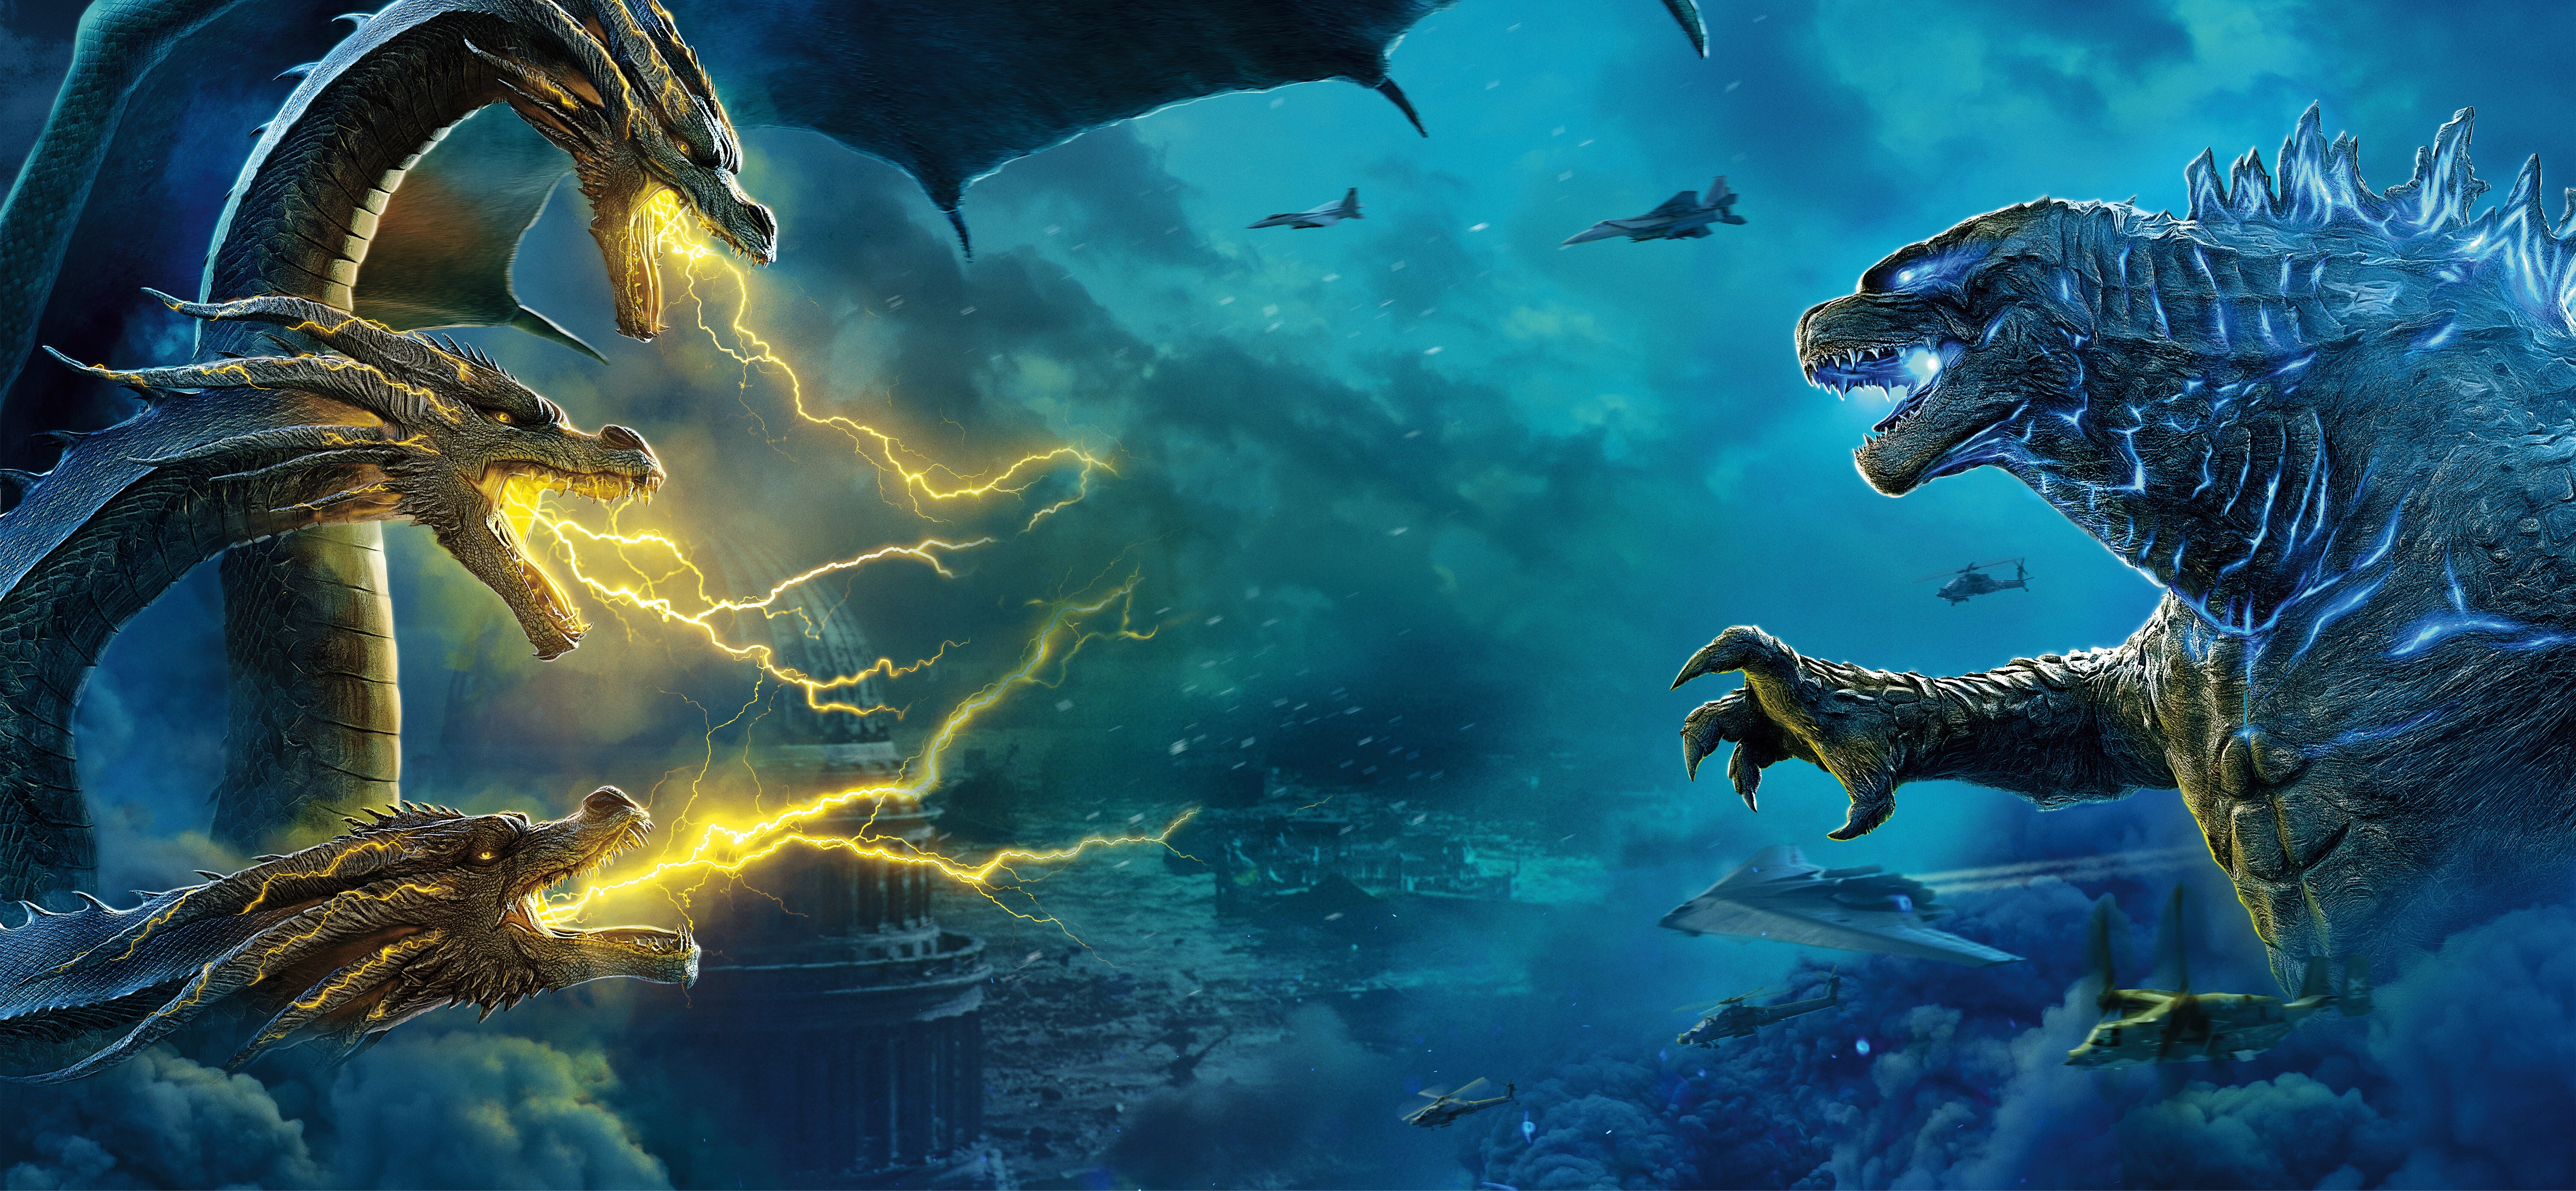 2019 Movie Wallpaper of Godzilla King of the Monsters  HD